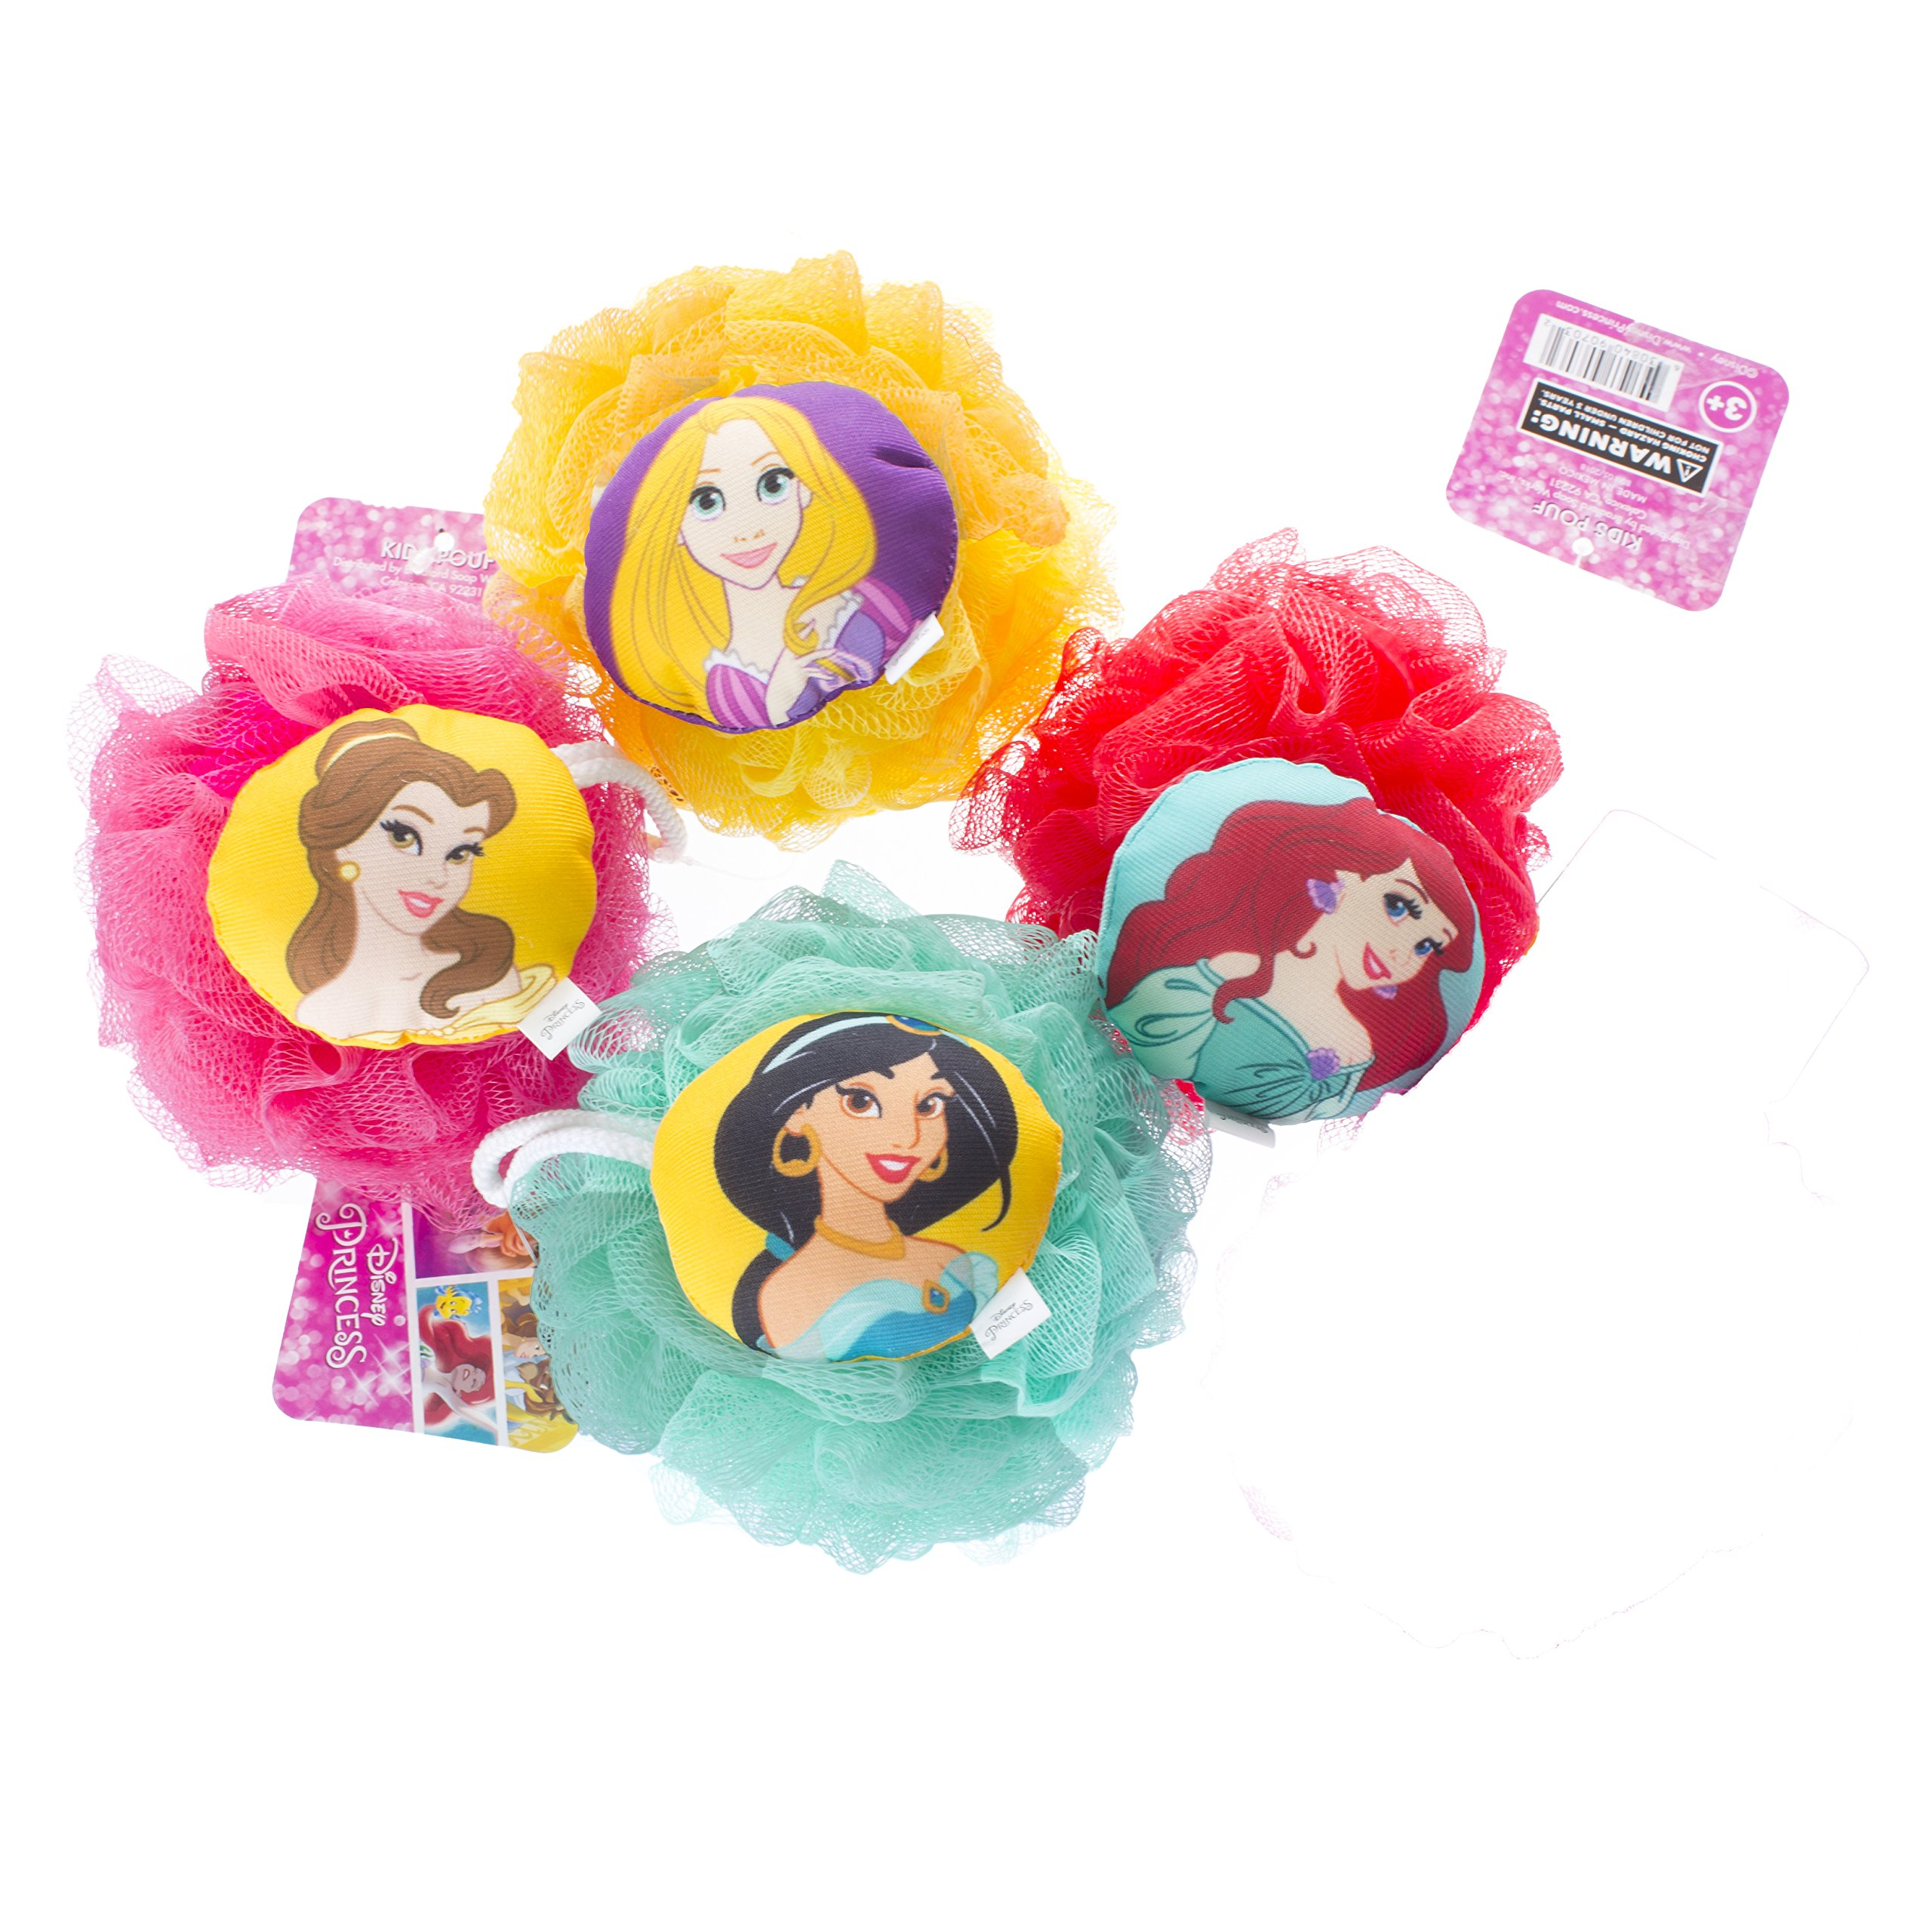 Disney Princess Childrens Large Shower Sponge Pouf (4 Pack) - Bath Loofah Luffa Loufa - Mesh Back and Body Scrubber - Exfoliate, Cleanse and Soothe Skin - Fun Kids Set for Boys and Girls